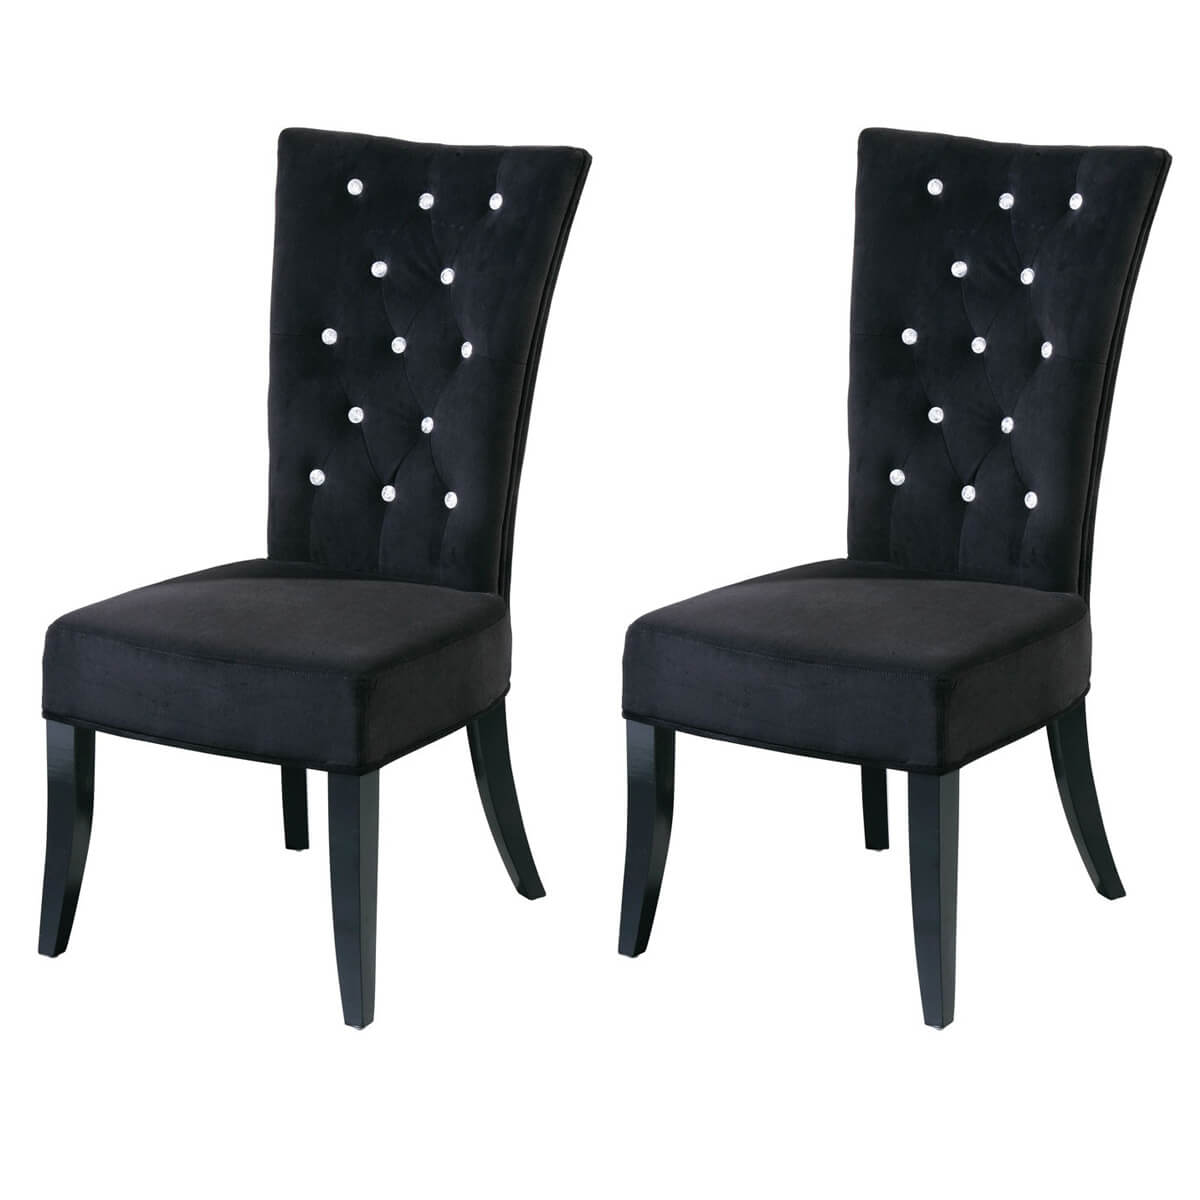 black velvet chair covers for dining room chairs radiance diamante